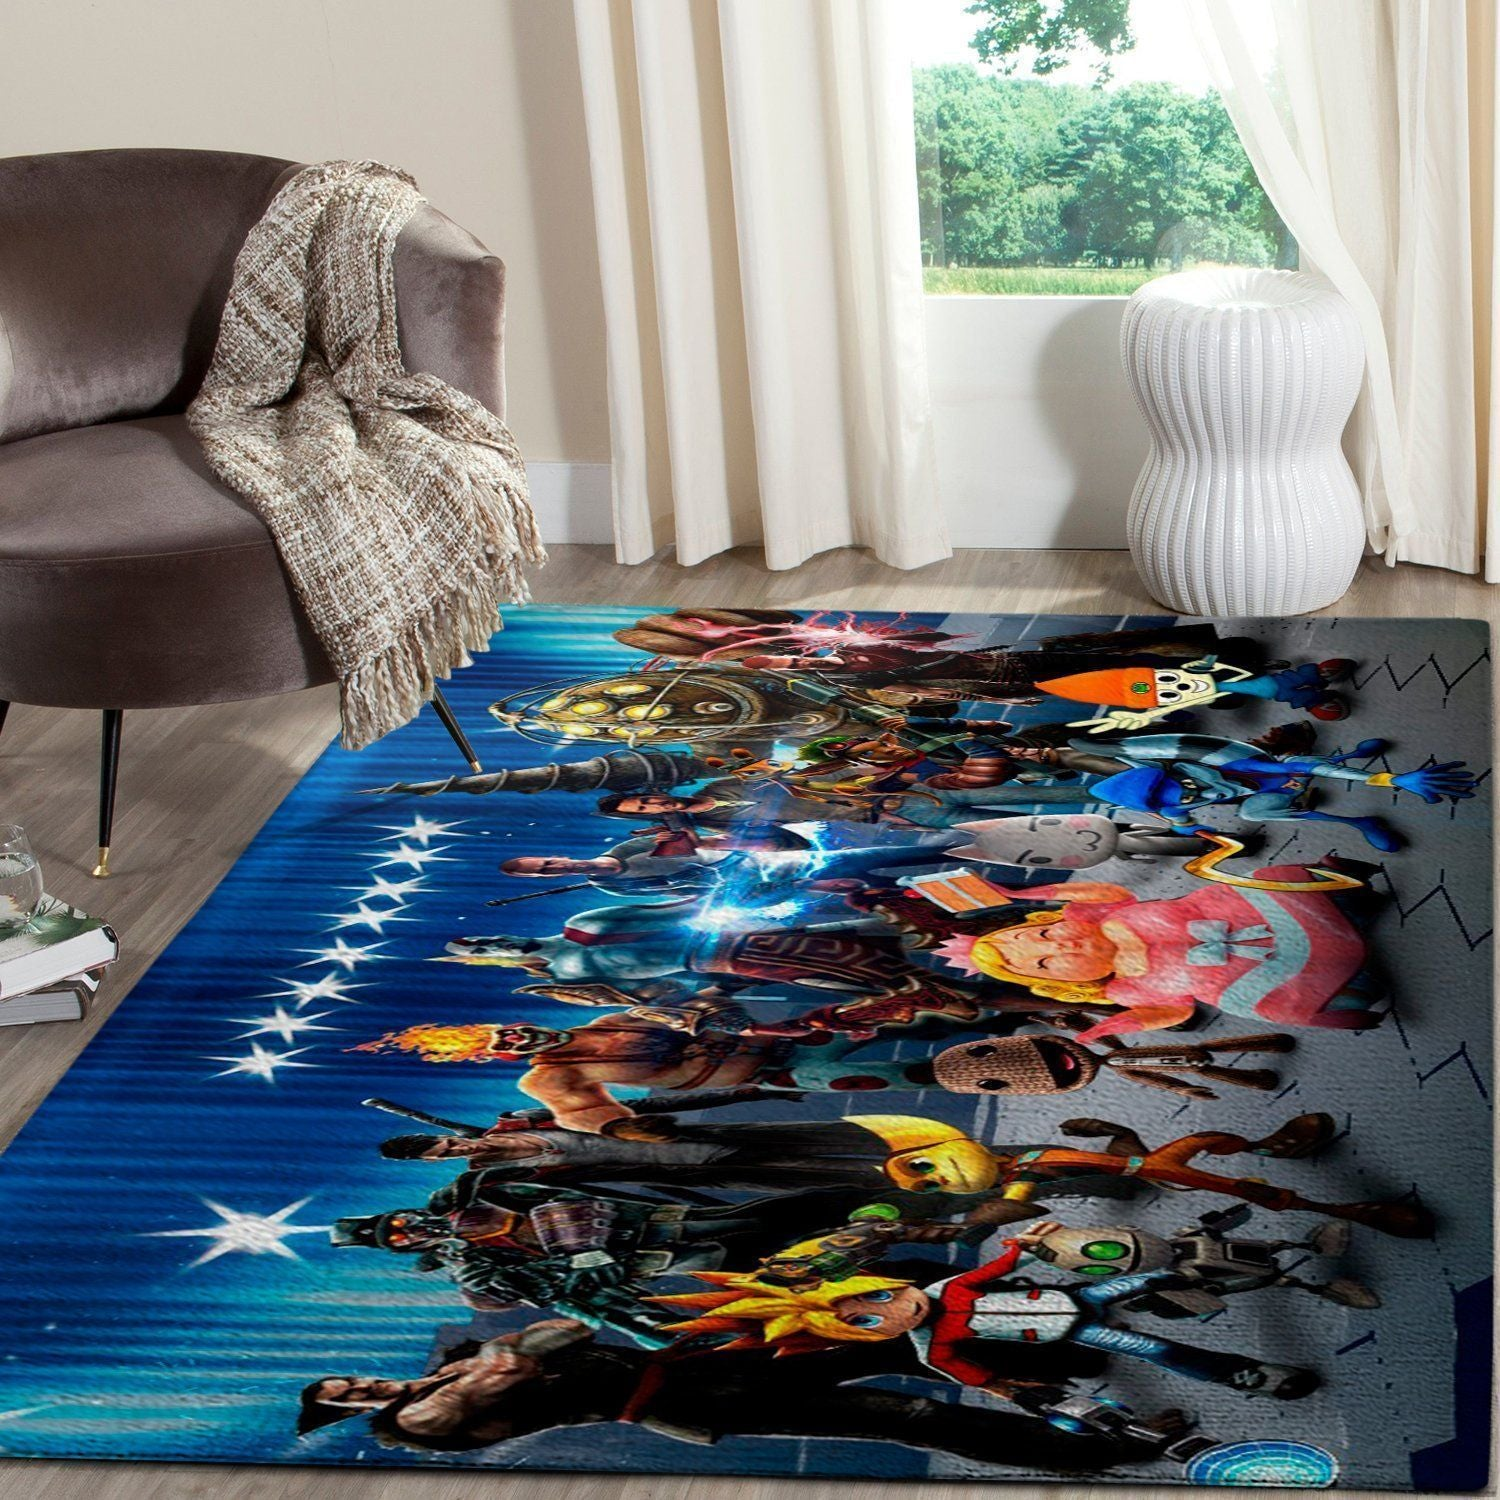 PlayStation Area Rug / Video Game Living Room Rugs, Custom Carpet Floor Decor 08119